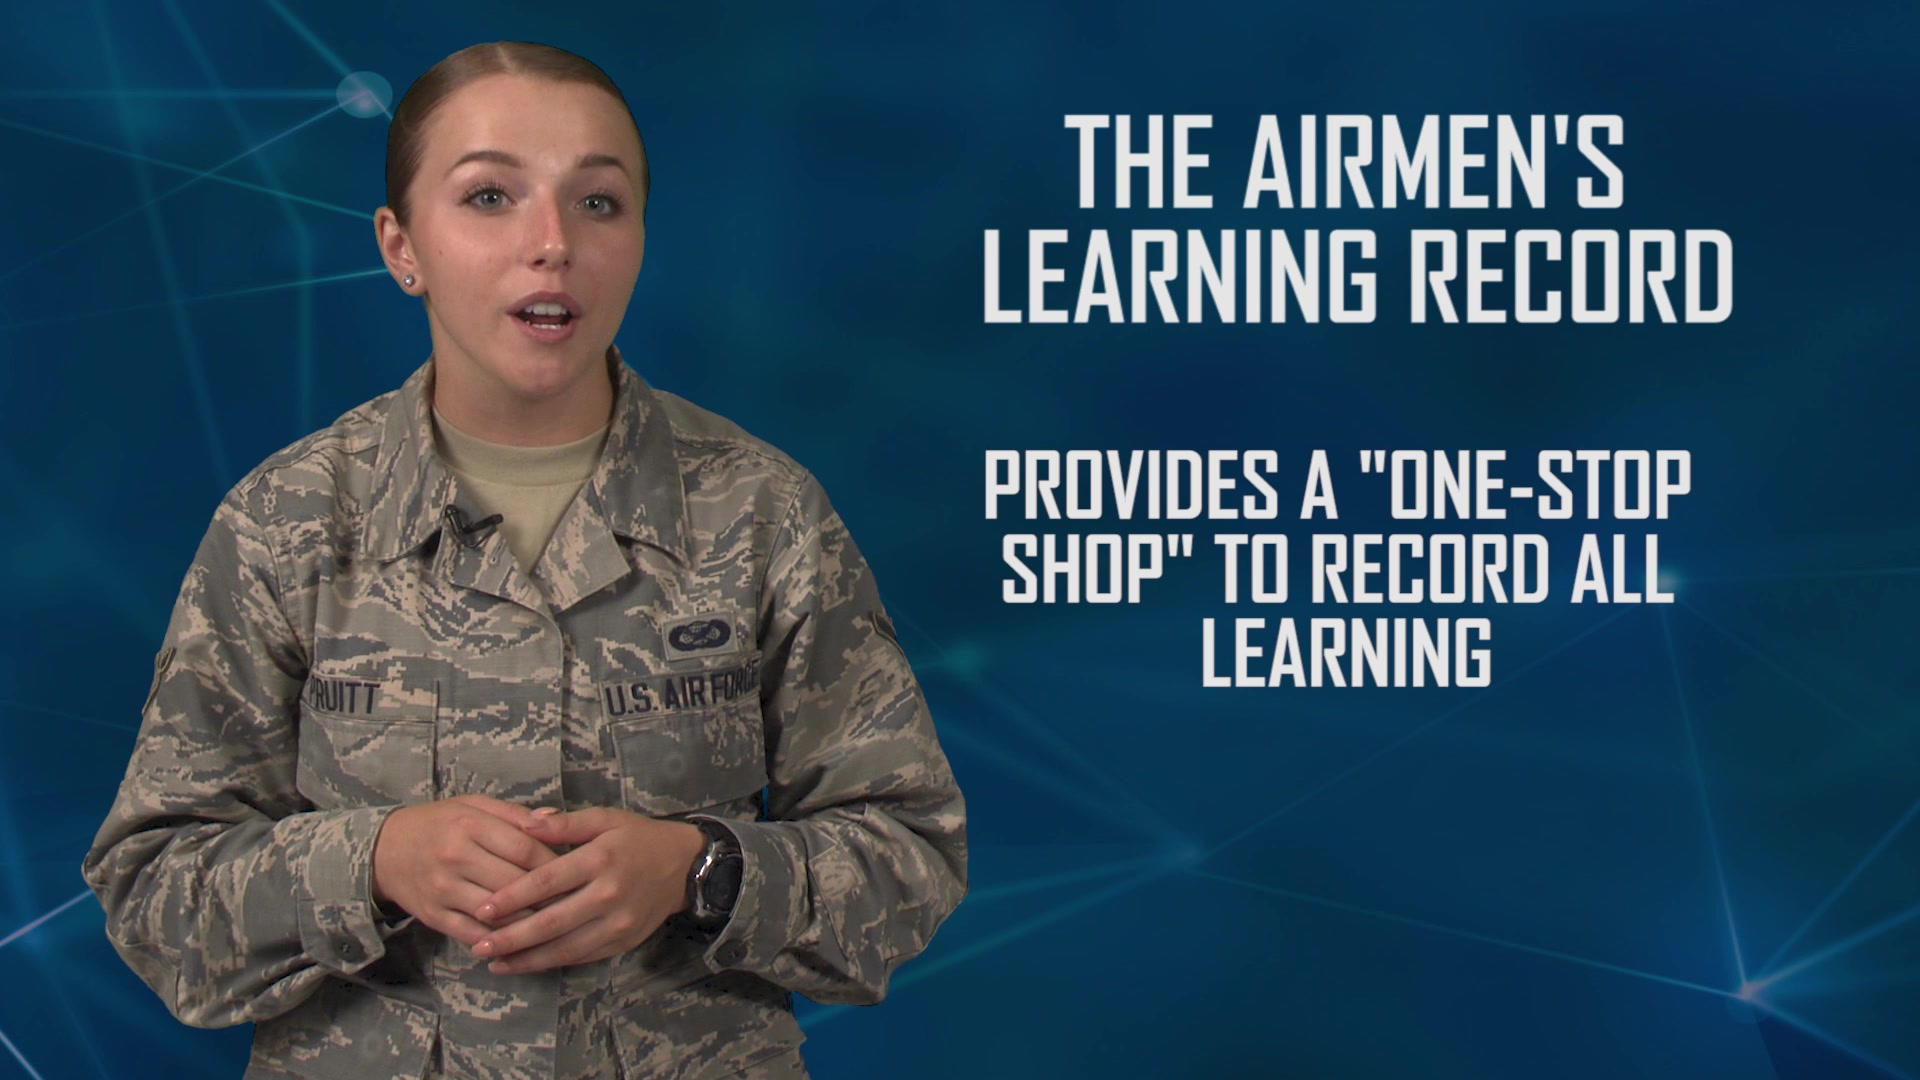 Air Education and Training Command is reimagining the way Airmen learn through the Continuum of Learning, a paradigm shift in education, training and the capitalization of experiences.   This video explains the Airmen's Learning Record.